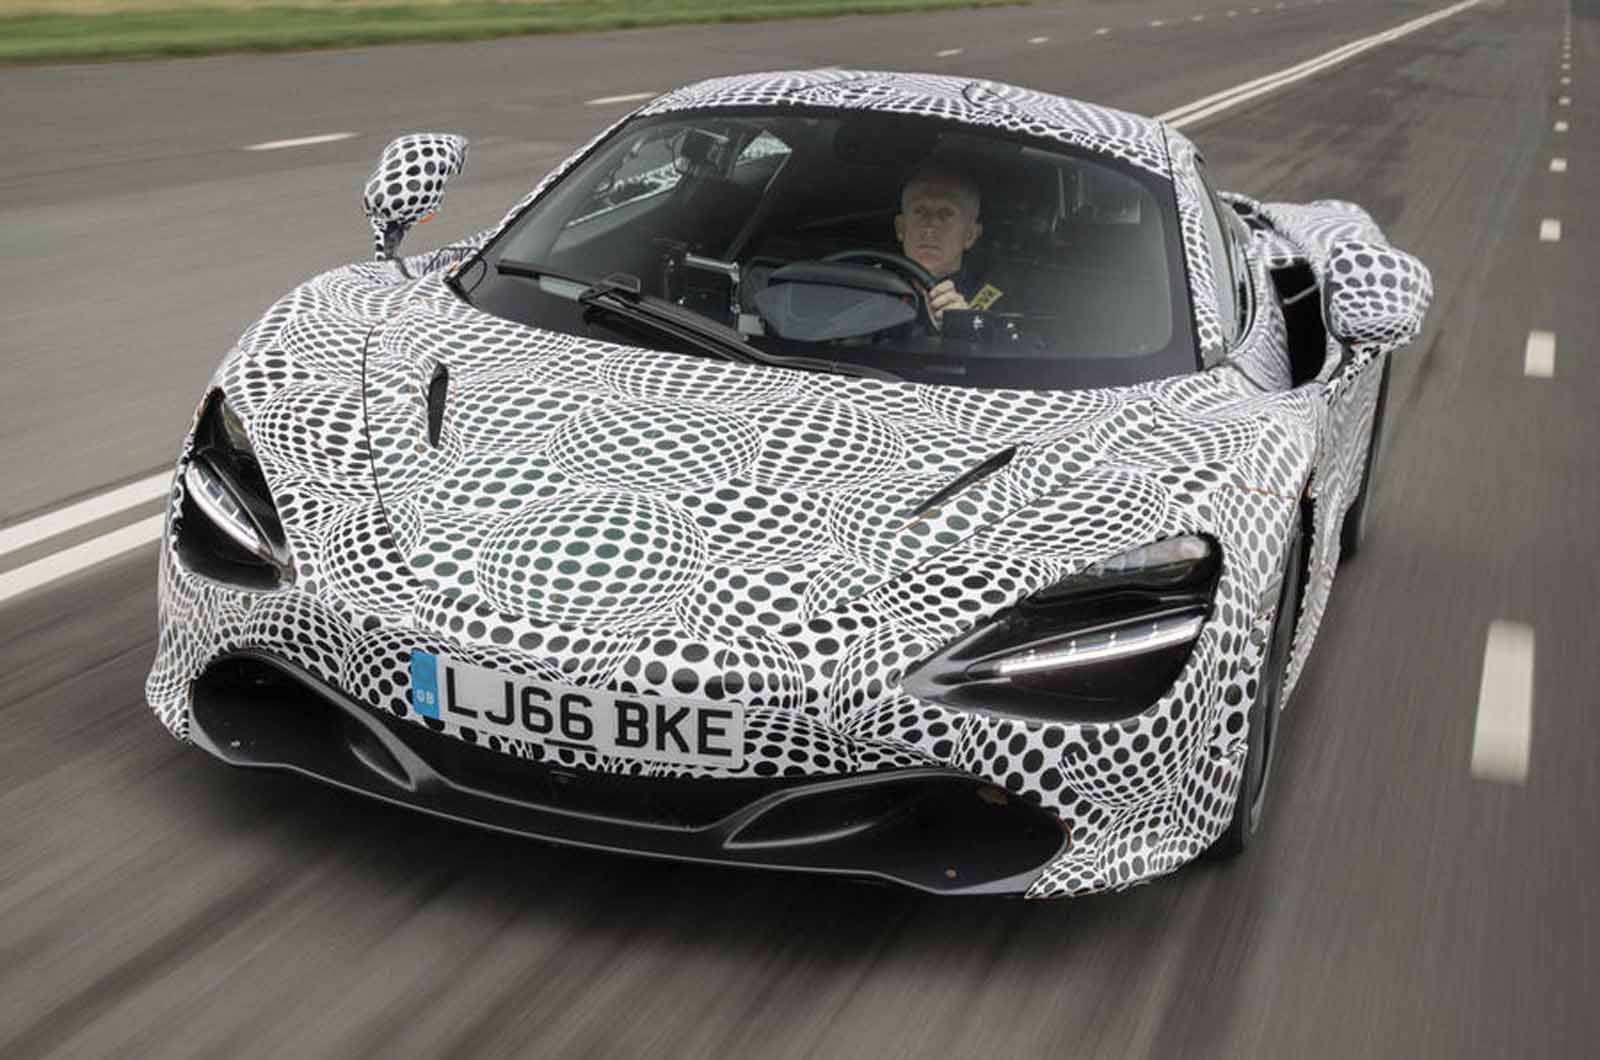 New McLaren BP23 hypercar will be the fastest McLaren ever